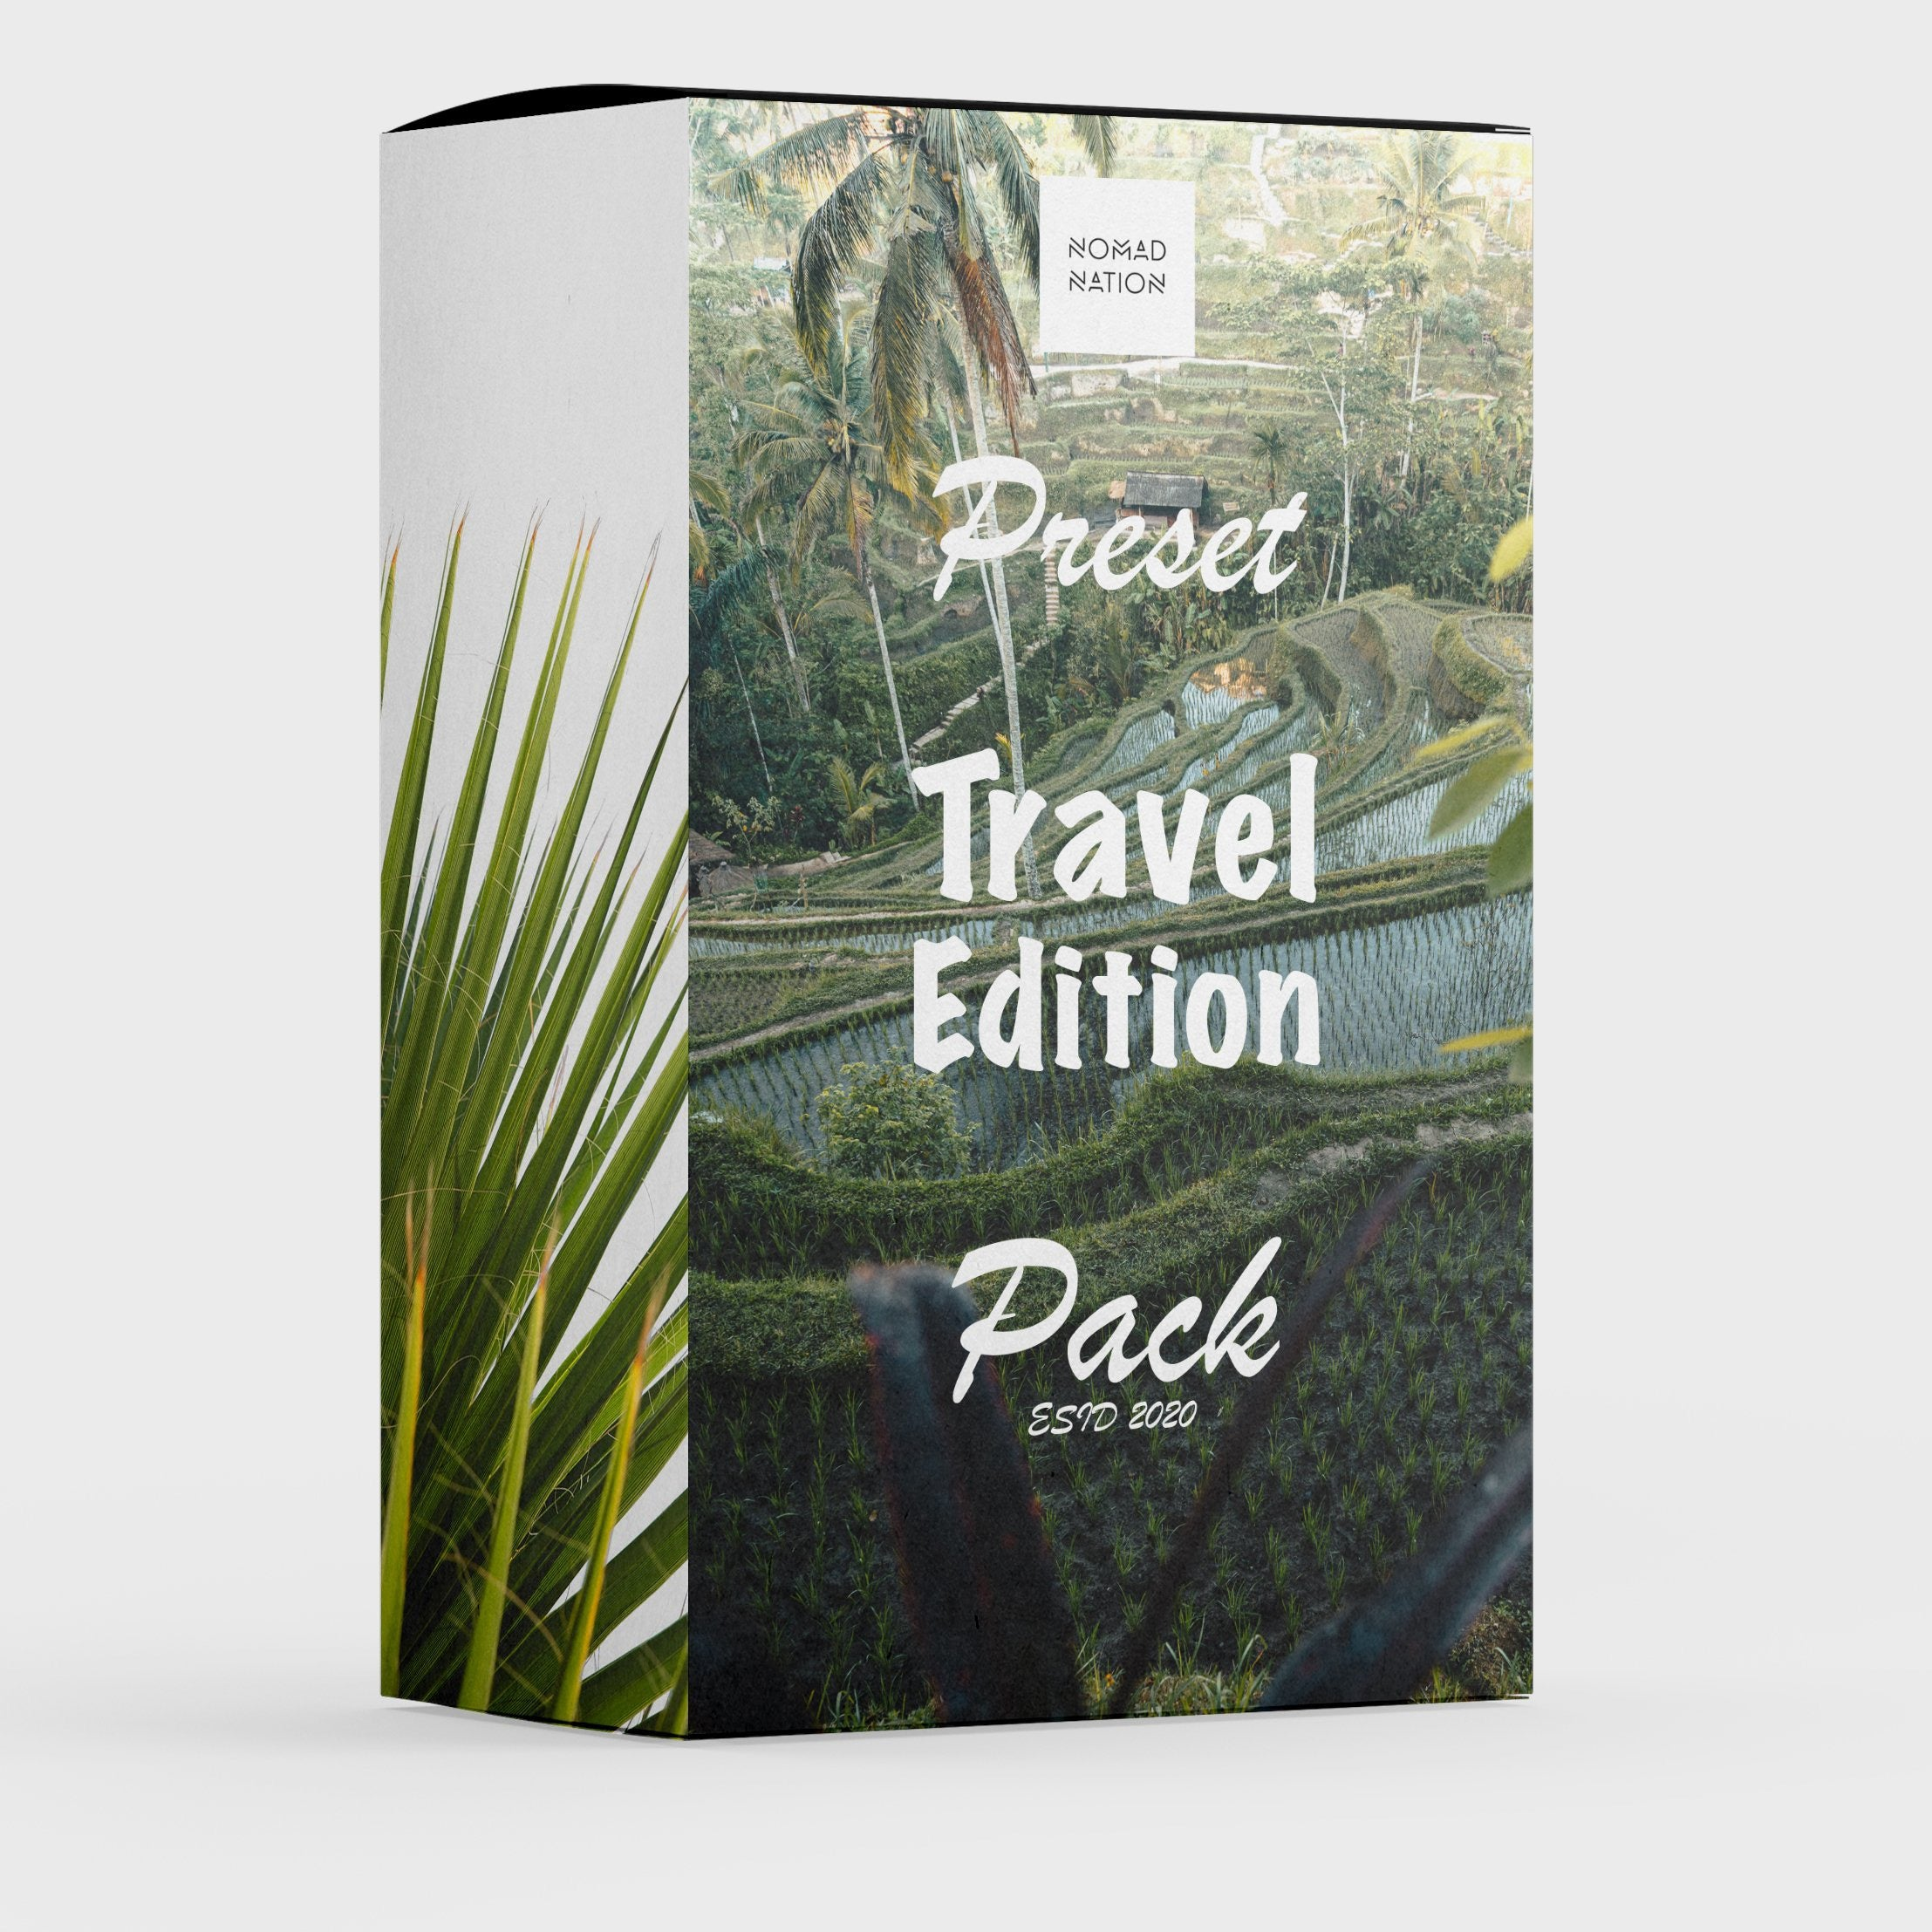 Preset Pack: Travel Edition